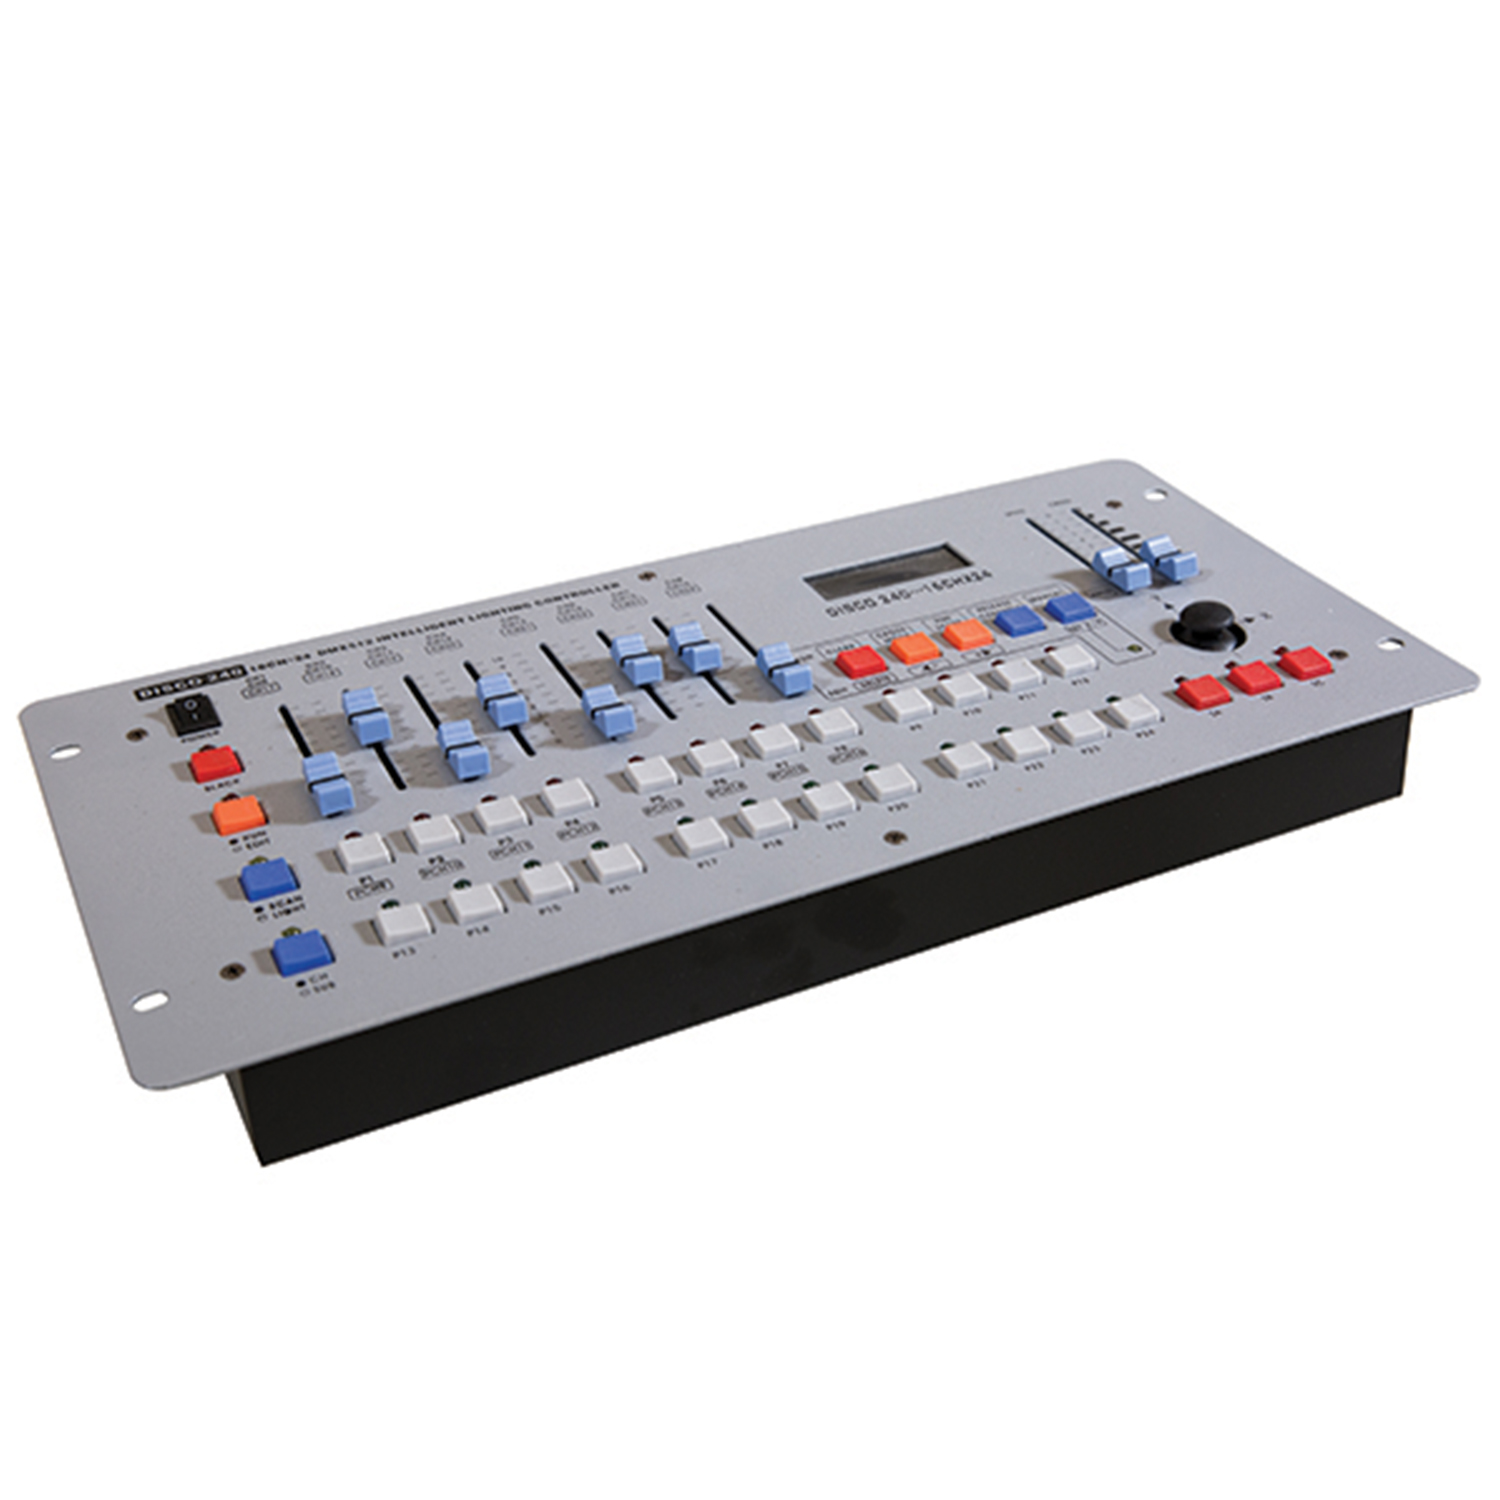 Led Dmx 27 Channel Dmx Controller For Led Dance Floors